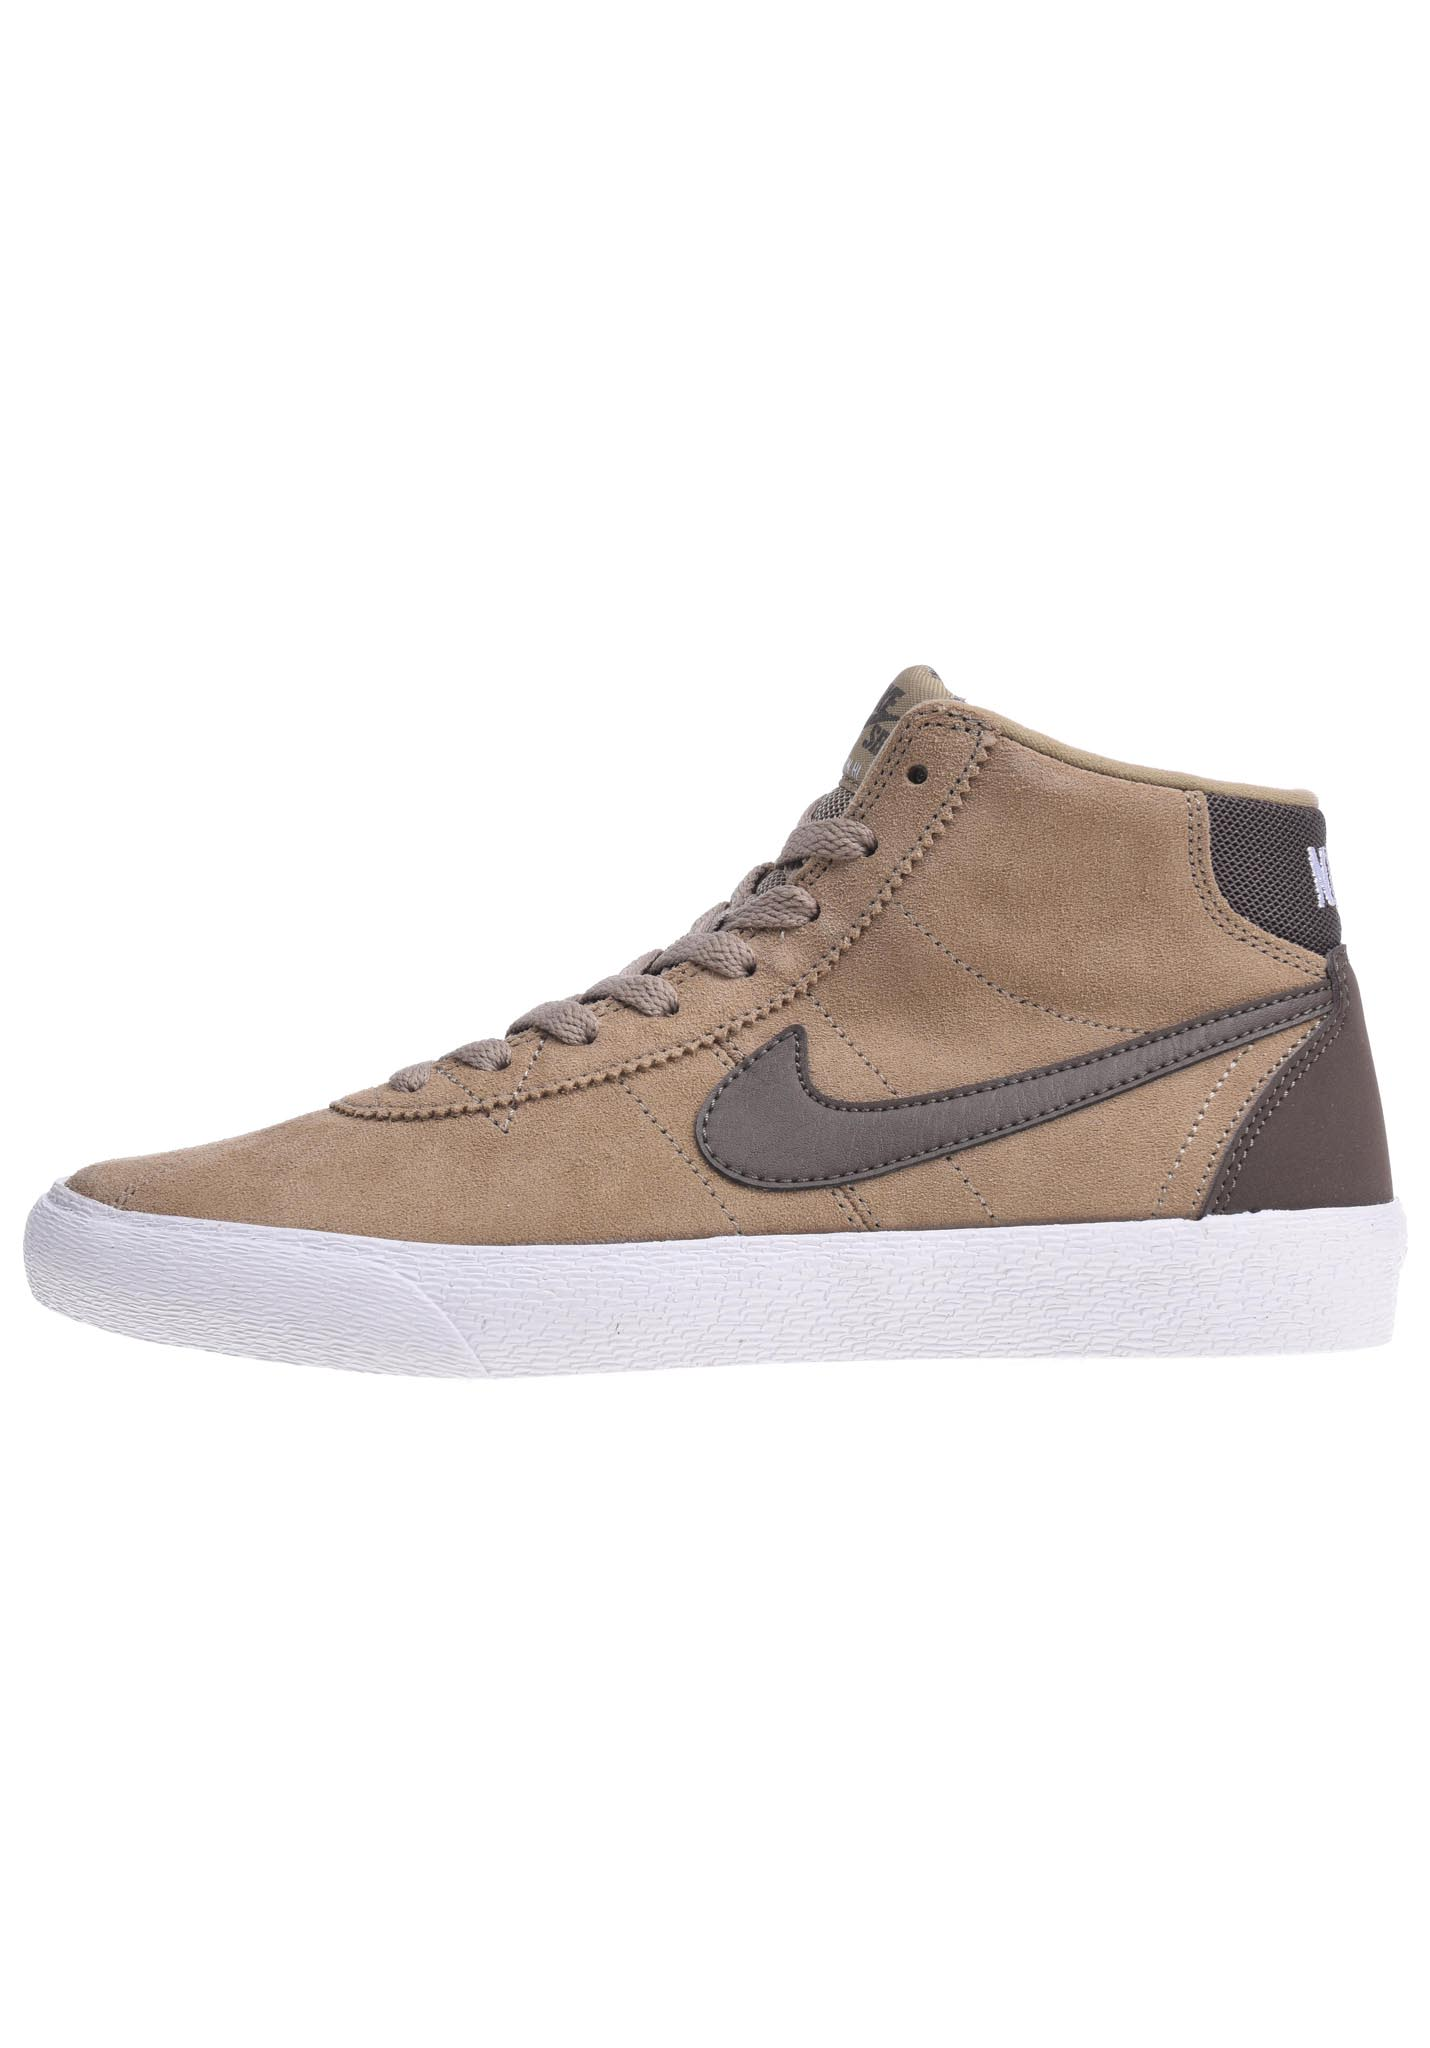 988214967078 NIKE SB Bruin Hi - Sneakers for Women - Beige - Planet Sports